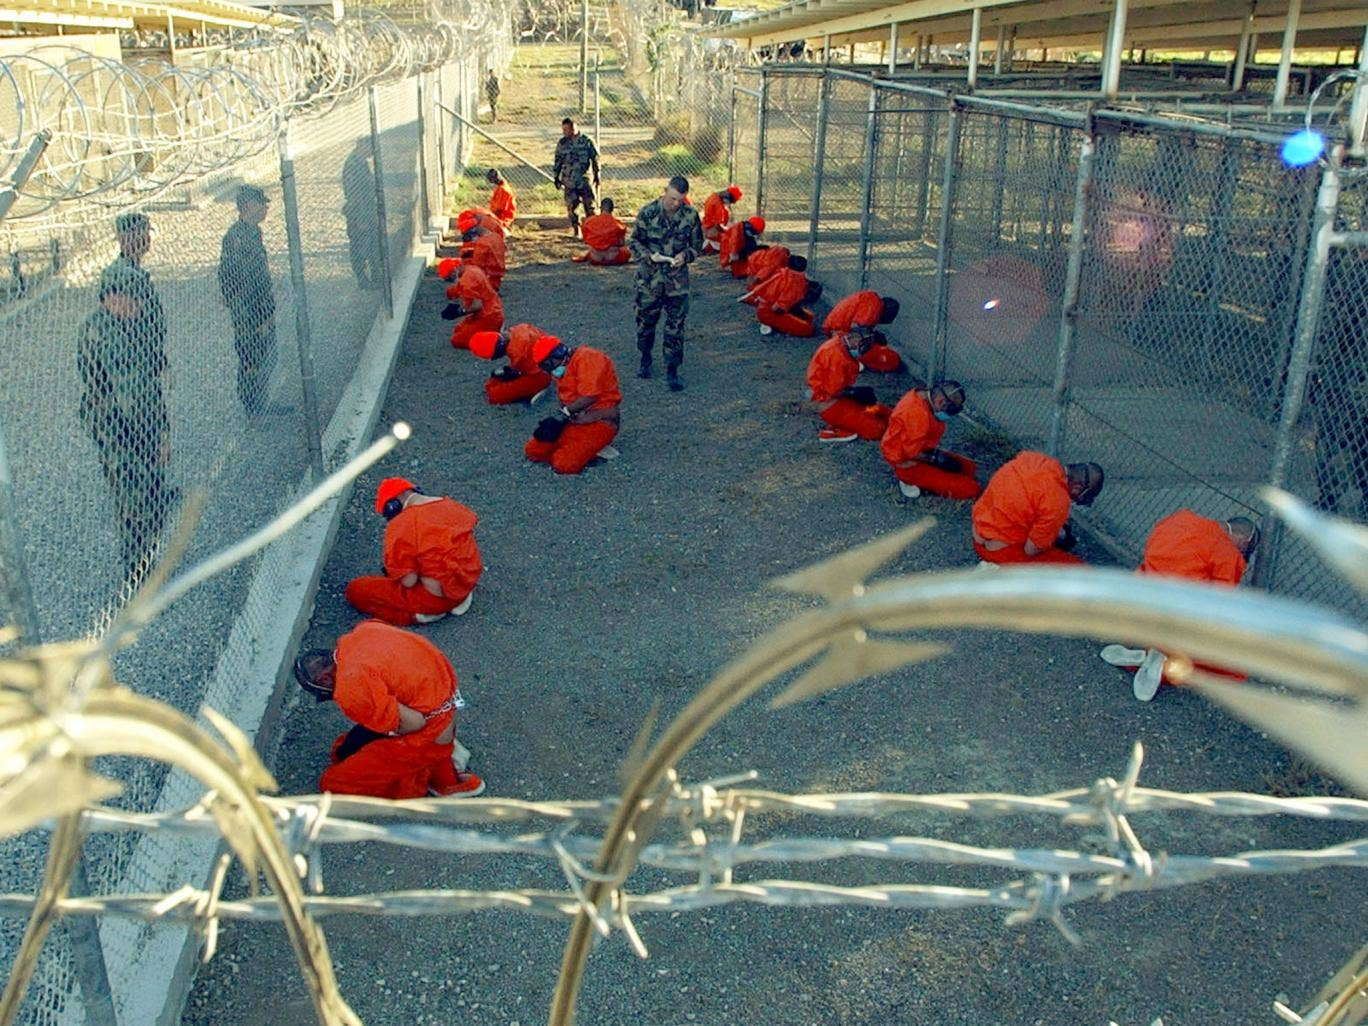 Prisoners in a holding area at Guantanamo Bay, Cuba